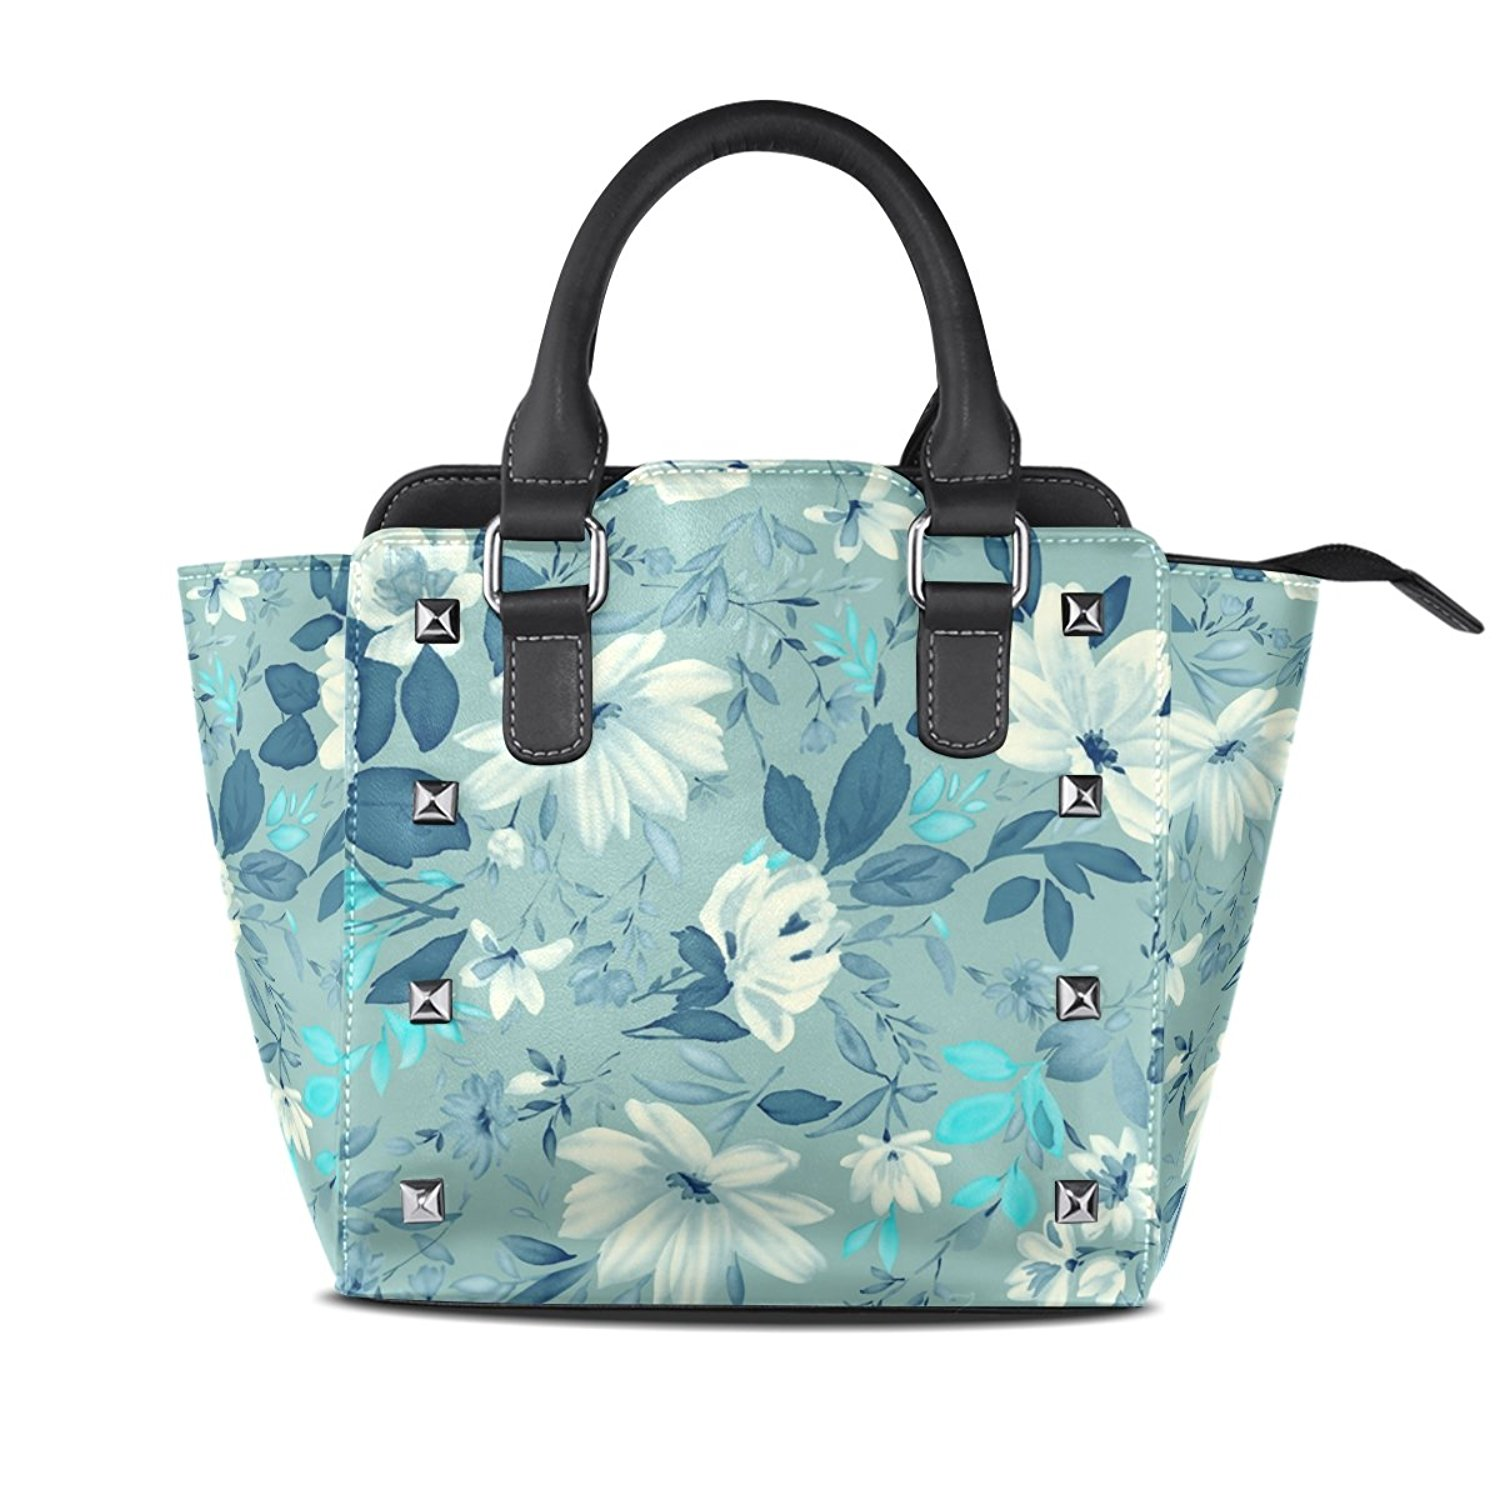 Sunlome Vintage Floral Pattern Women's Leather Tote Shoulder Bags Handbags